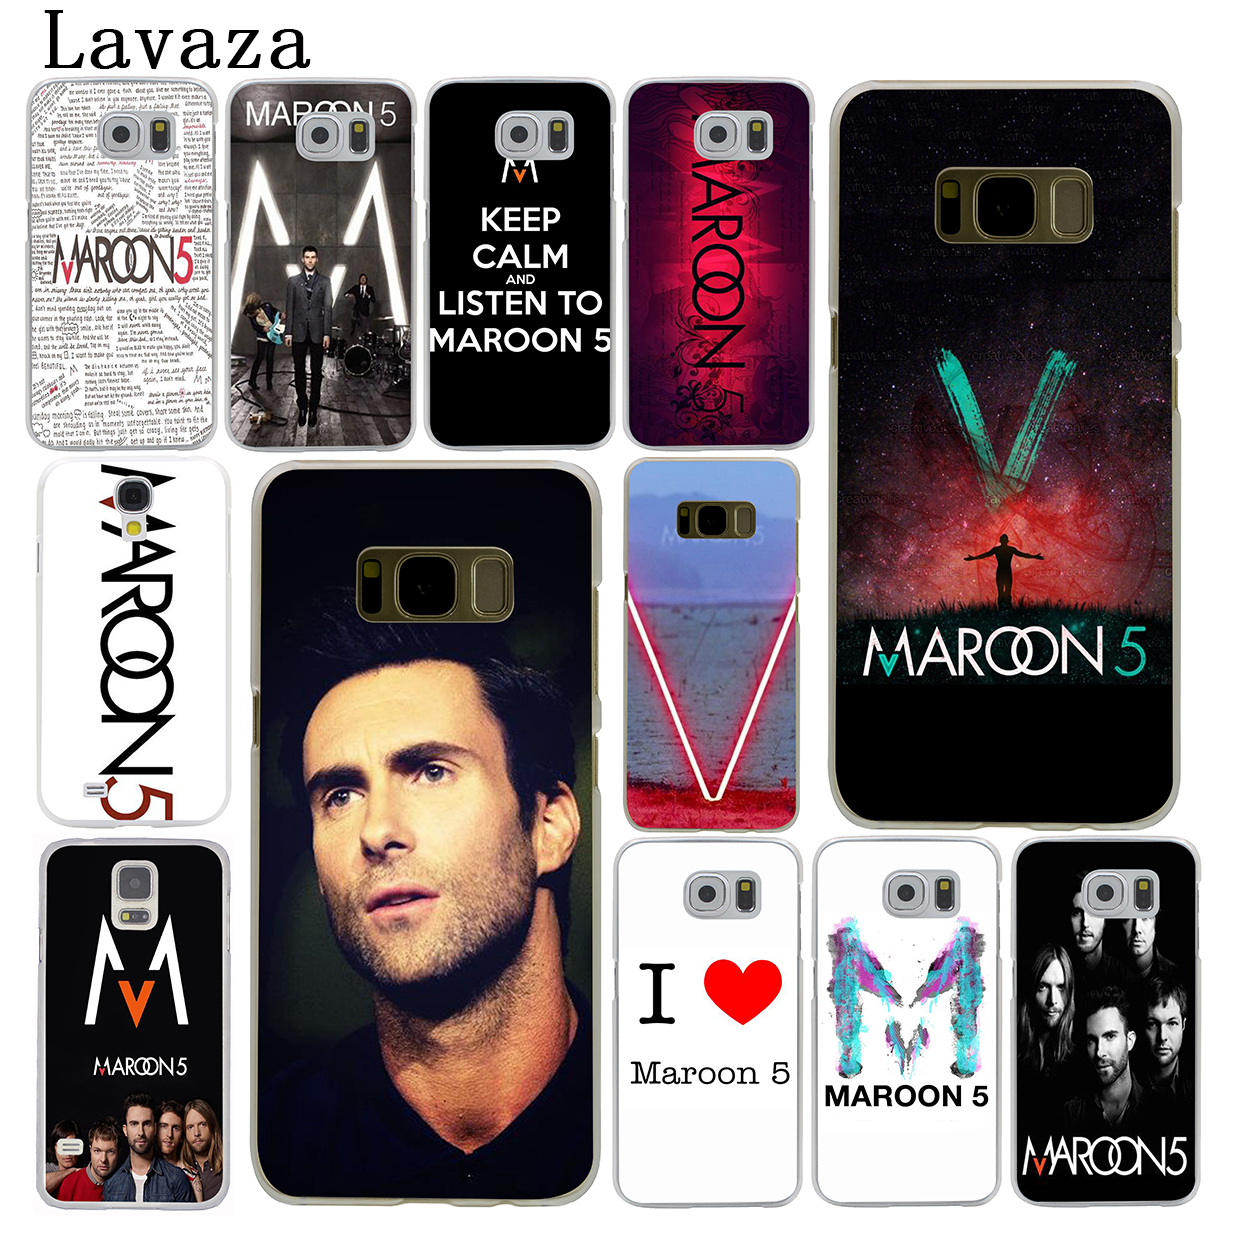 Lavaza maroon 5 Hard Phone Cover Case for Samsung Galaxy S9 S6 S7 Edge S8 Plus S3 S4 S5 & Mini S2 Cases